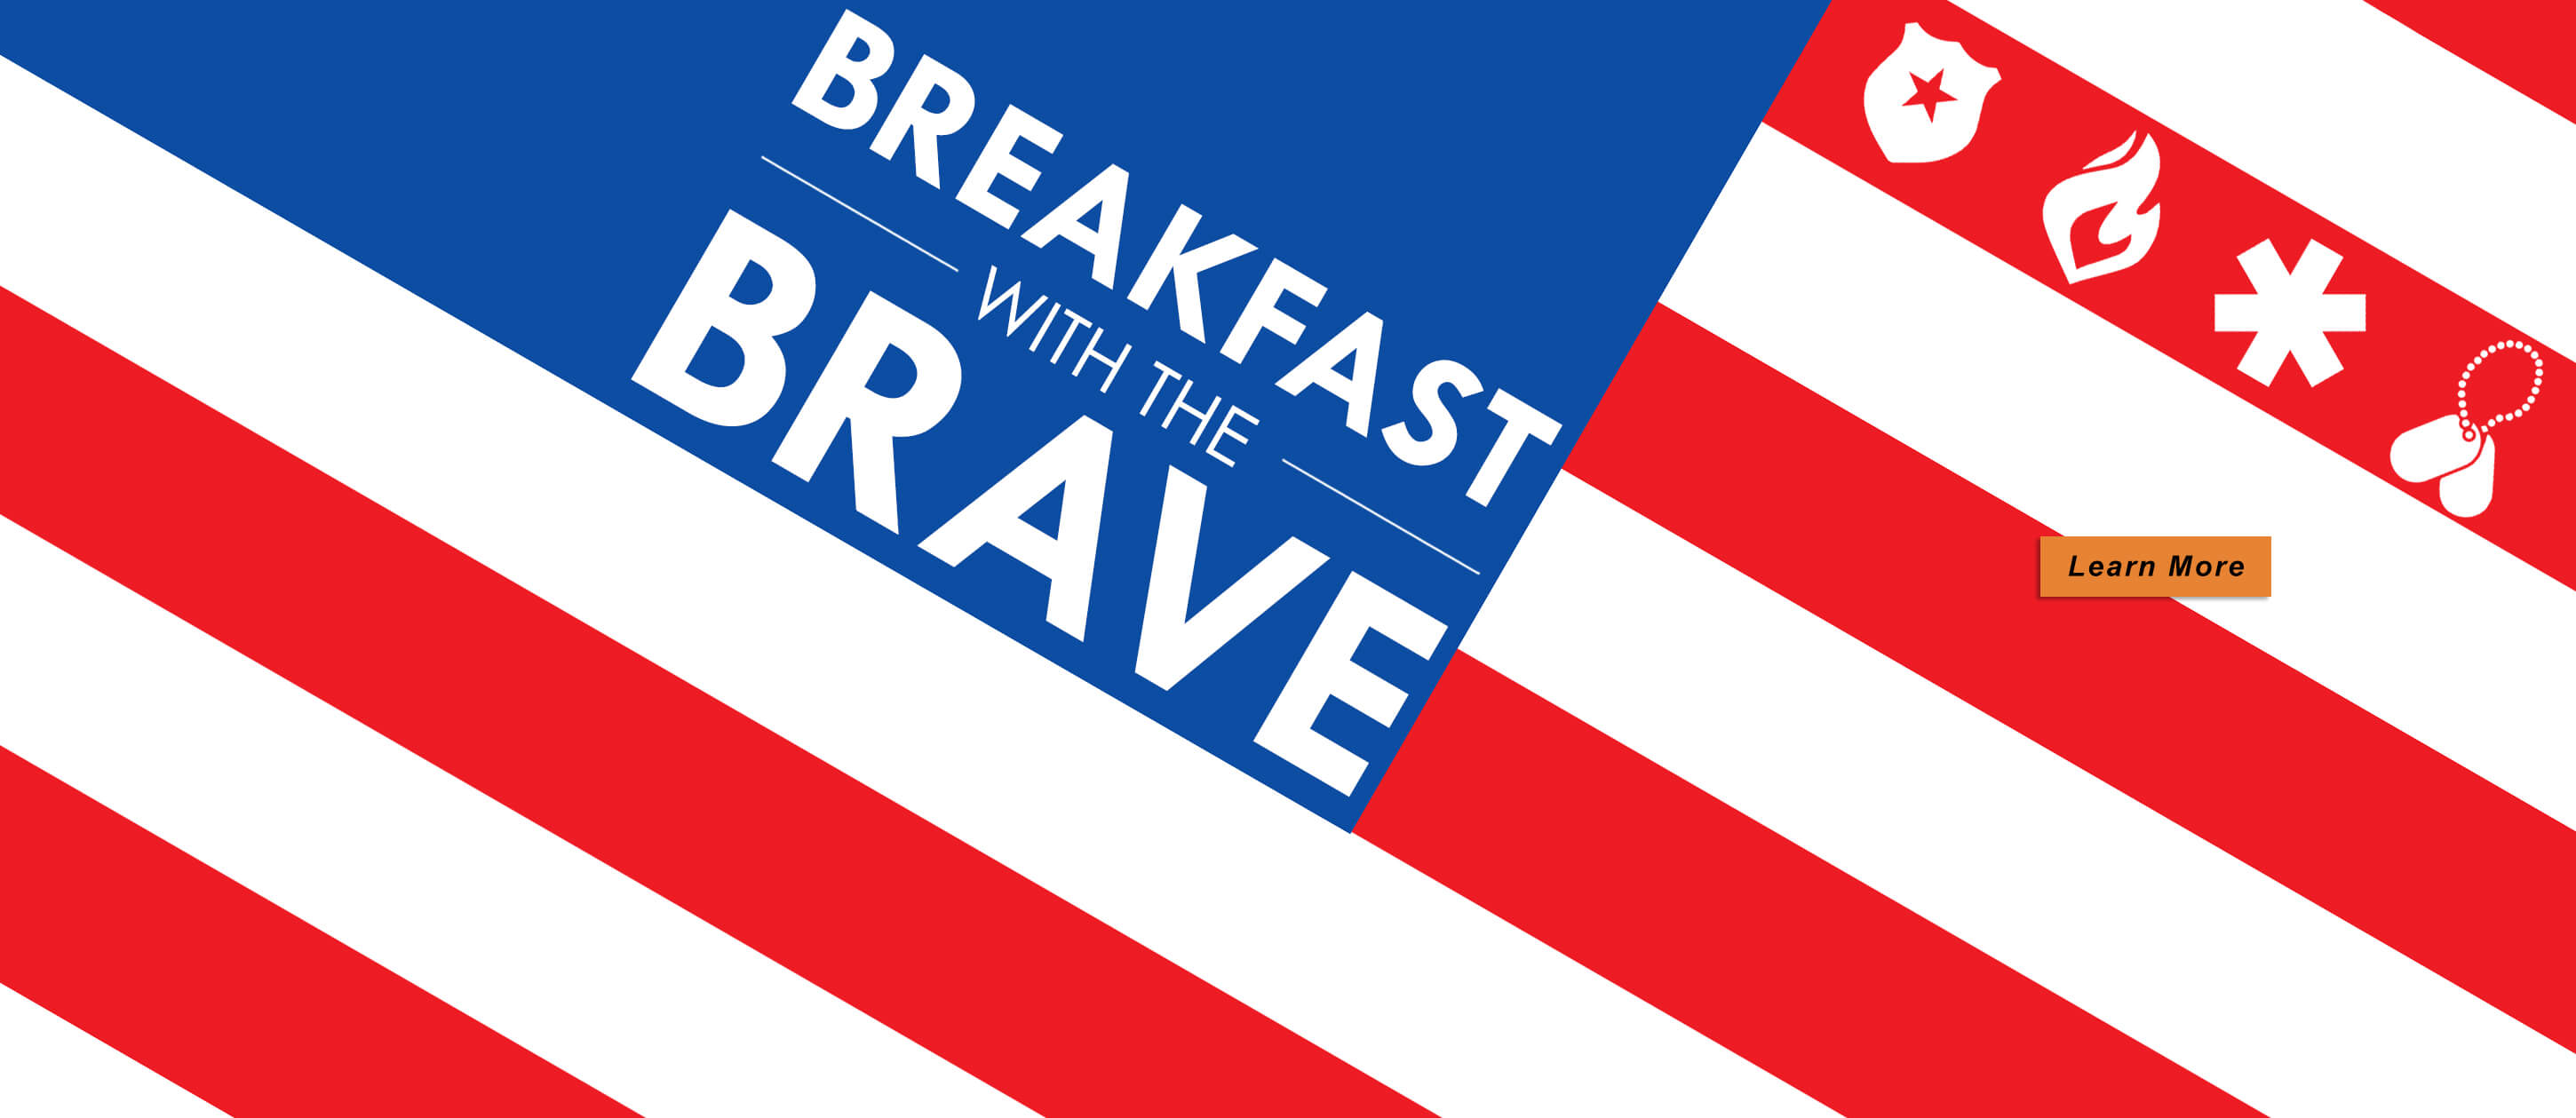 Breakfast with the Brave